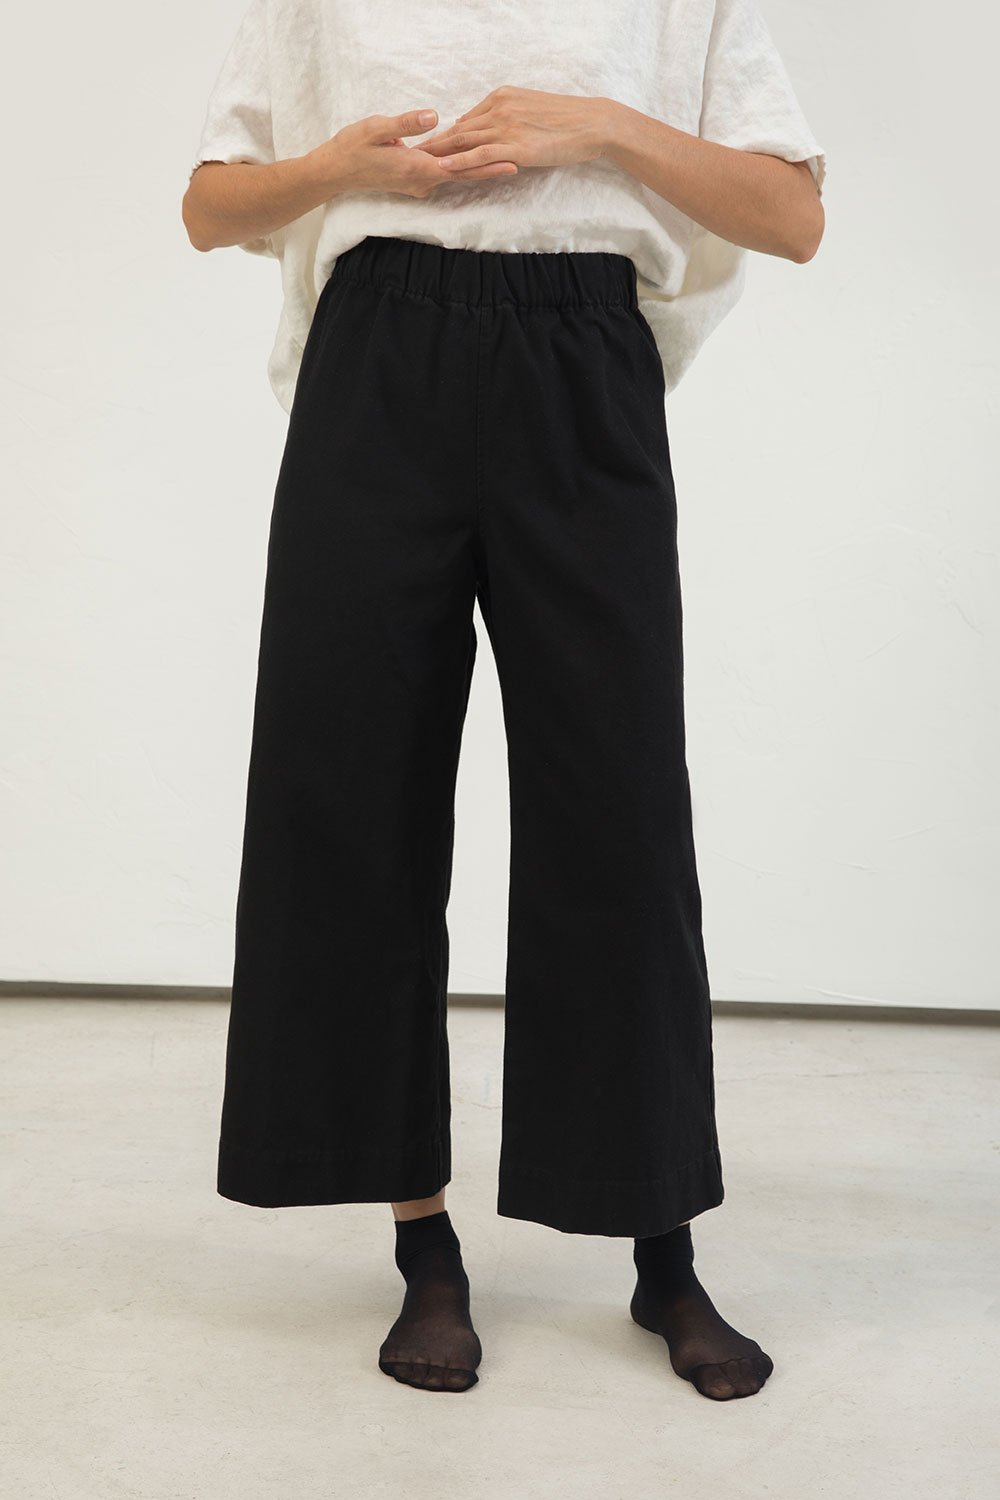 Florence Pant in Cotton Canvas Black - Lisa-Small Regular